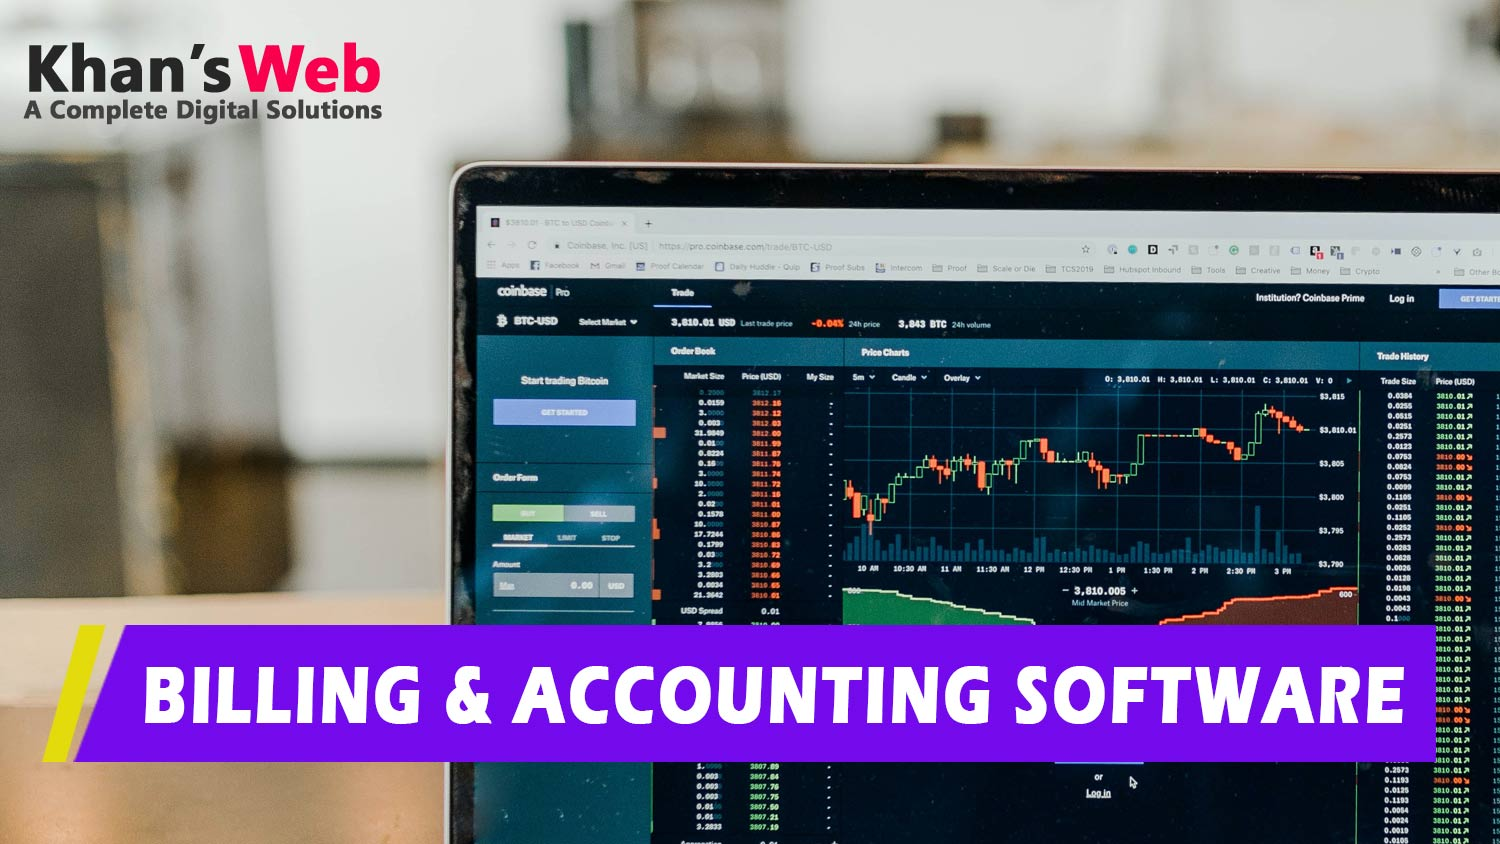 Billing & Accounting Software Khansweb